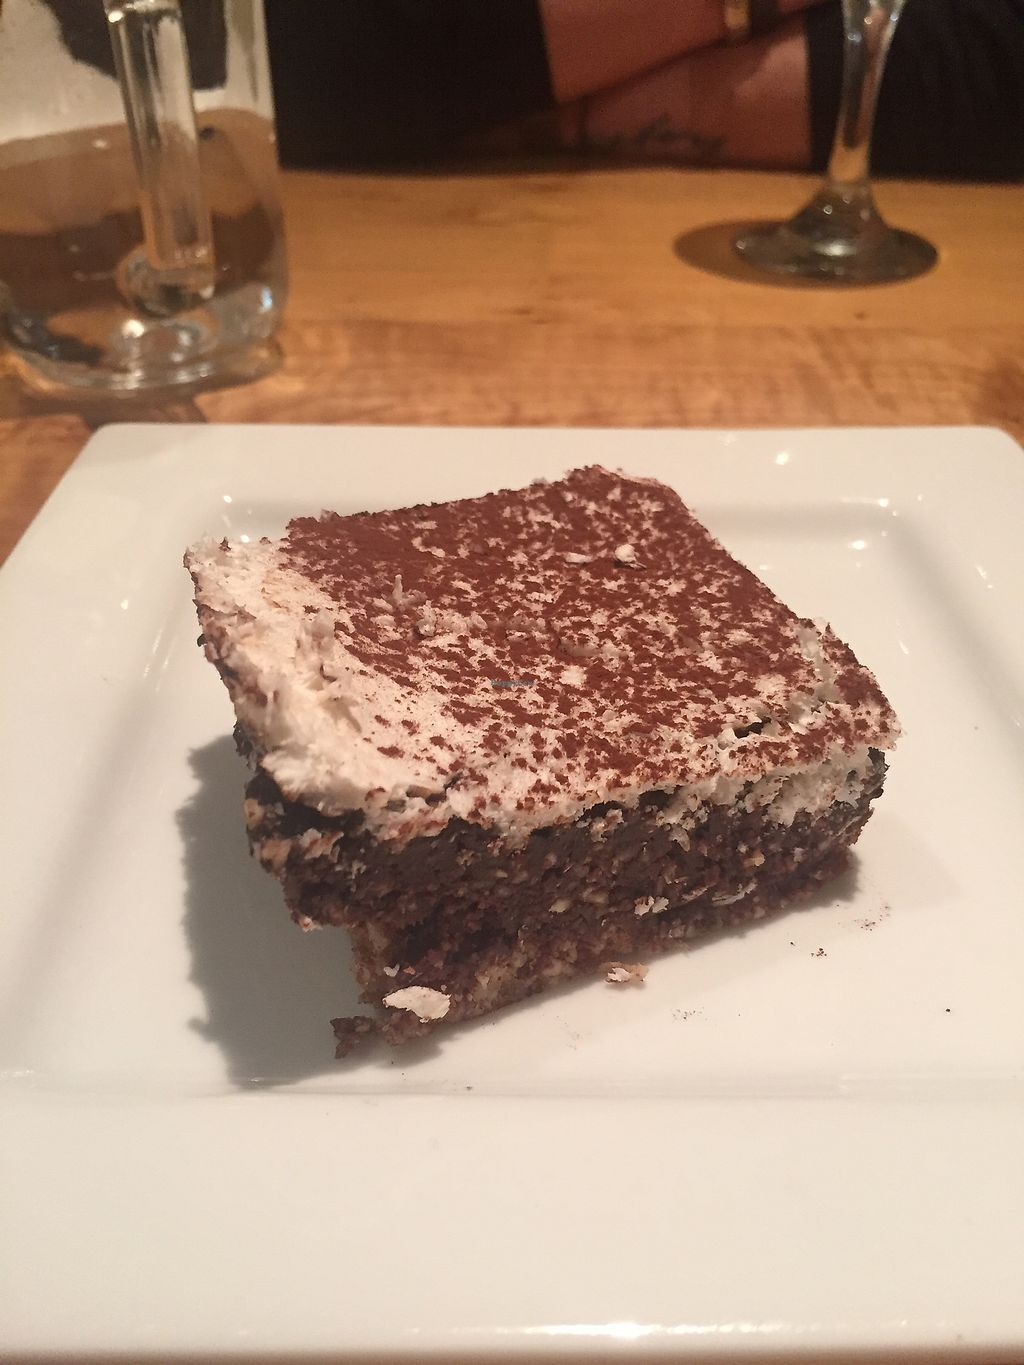 """Photo of Big Feast Bistro  by <a href=""""/members/profile/JessicaKlose"""">JessicaKlose</a> <br/>Vegan smores dessert  <br/> October 6, 2017  - <a href='/contact/abuse/image/102423/312464'>Report</a>"""